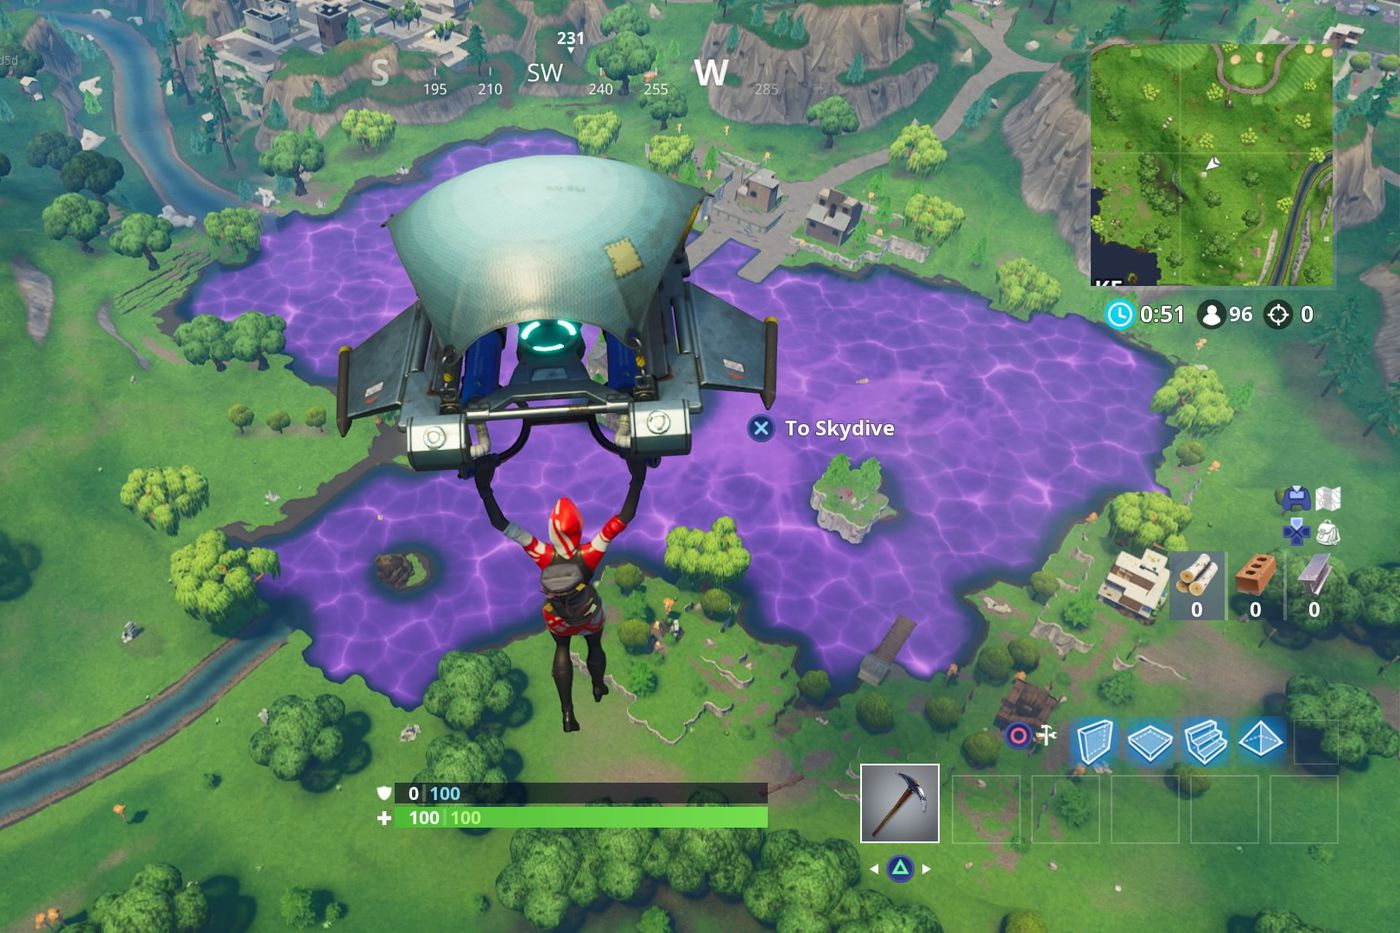 Fortnite Not Showing Fps The Ipad Pro Can Now Run Fortnite At 120 Frames Per Second The Verge